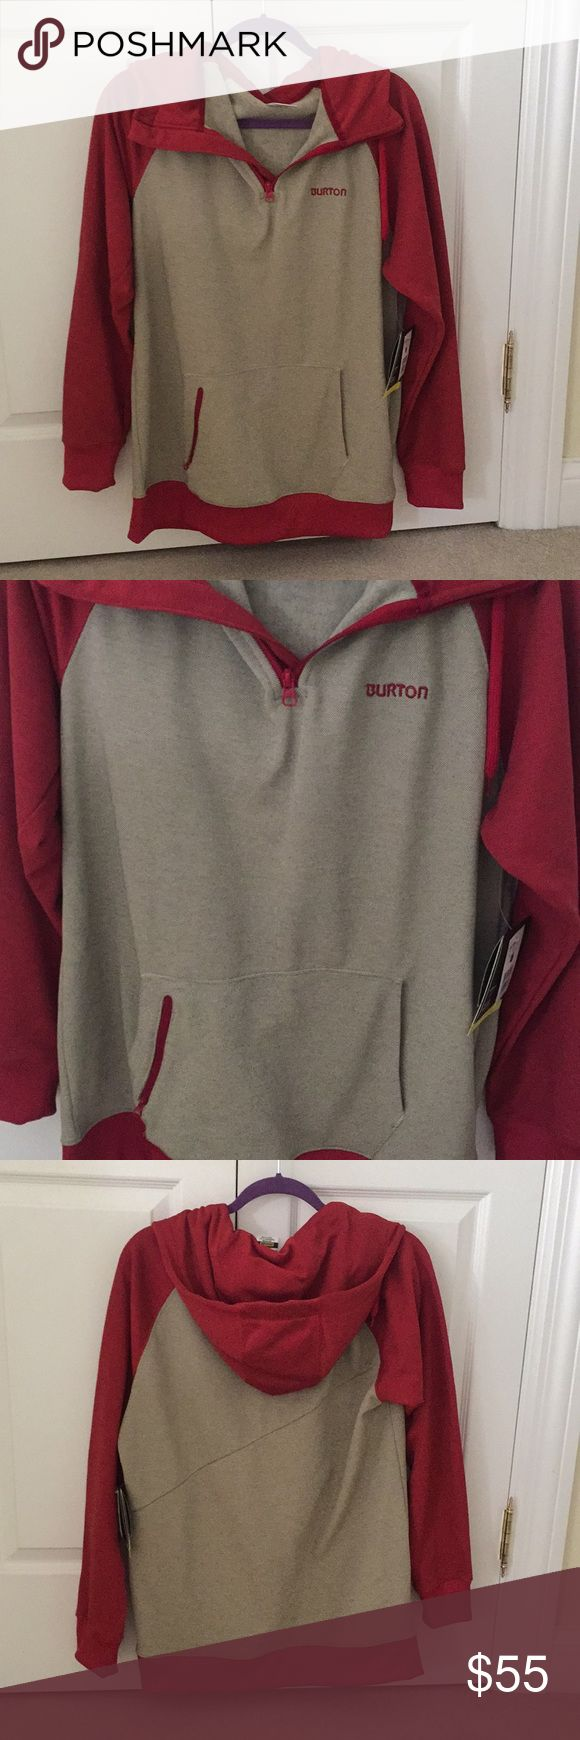 Burton Dry Ride Totem Hoodie Size Small New with tags. Burton men's beige and red quarter zip hoodie. Perfect for snowboarding/skiing. See tag photos for more details. Make an offer! Burton Jackets & Coats Ski & Snowboard